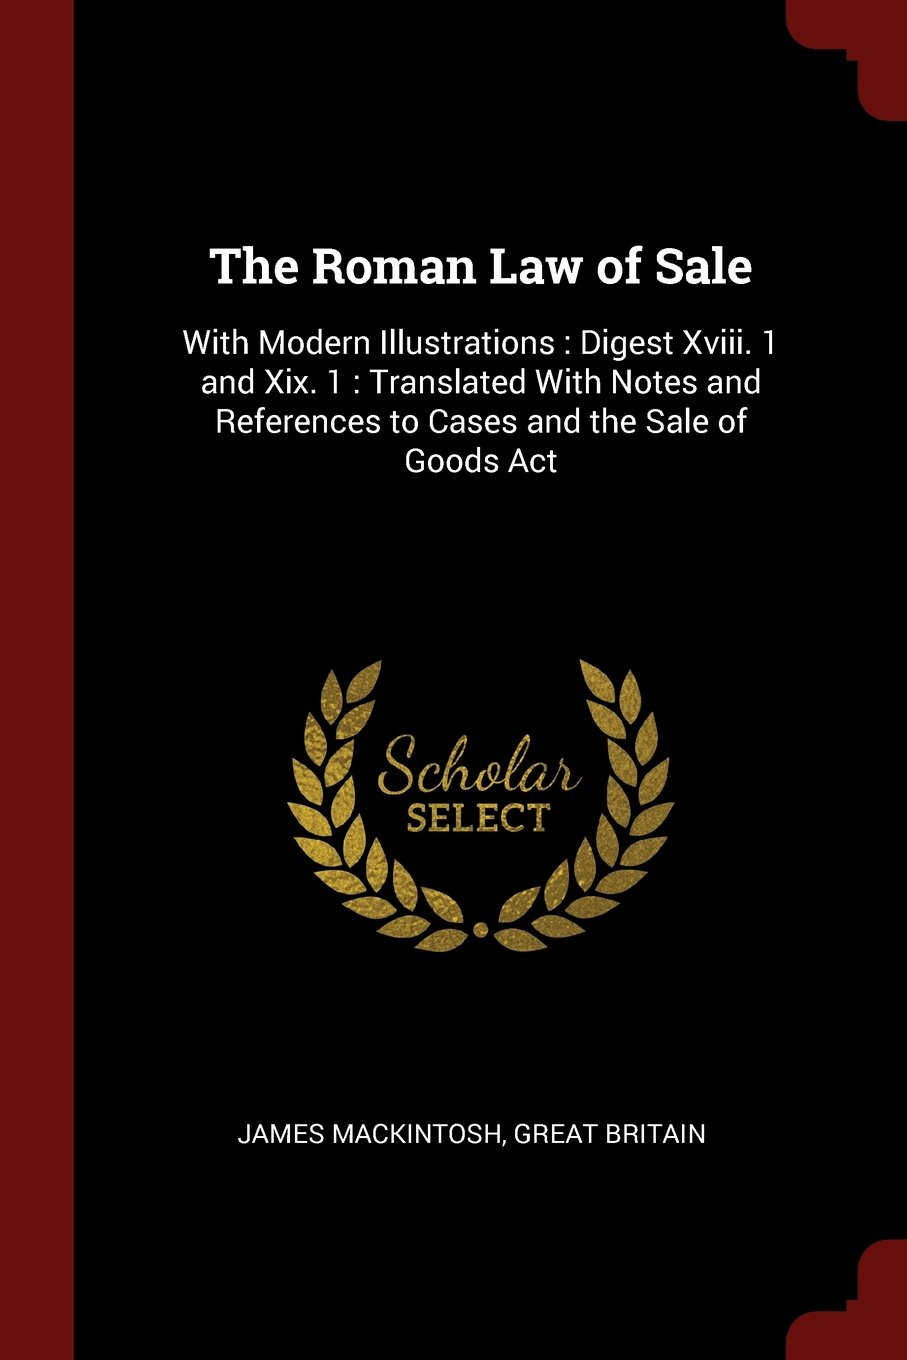 Download The Roman Law of Sale: With Modern Illustrations : Digest Xviii. 1 and Xix. 1 : Translated With Notes and References to Cases and the Sale of Goods Act ebook